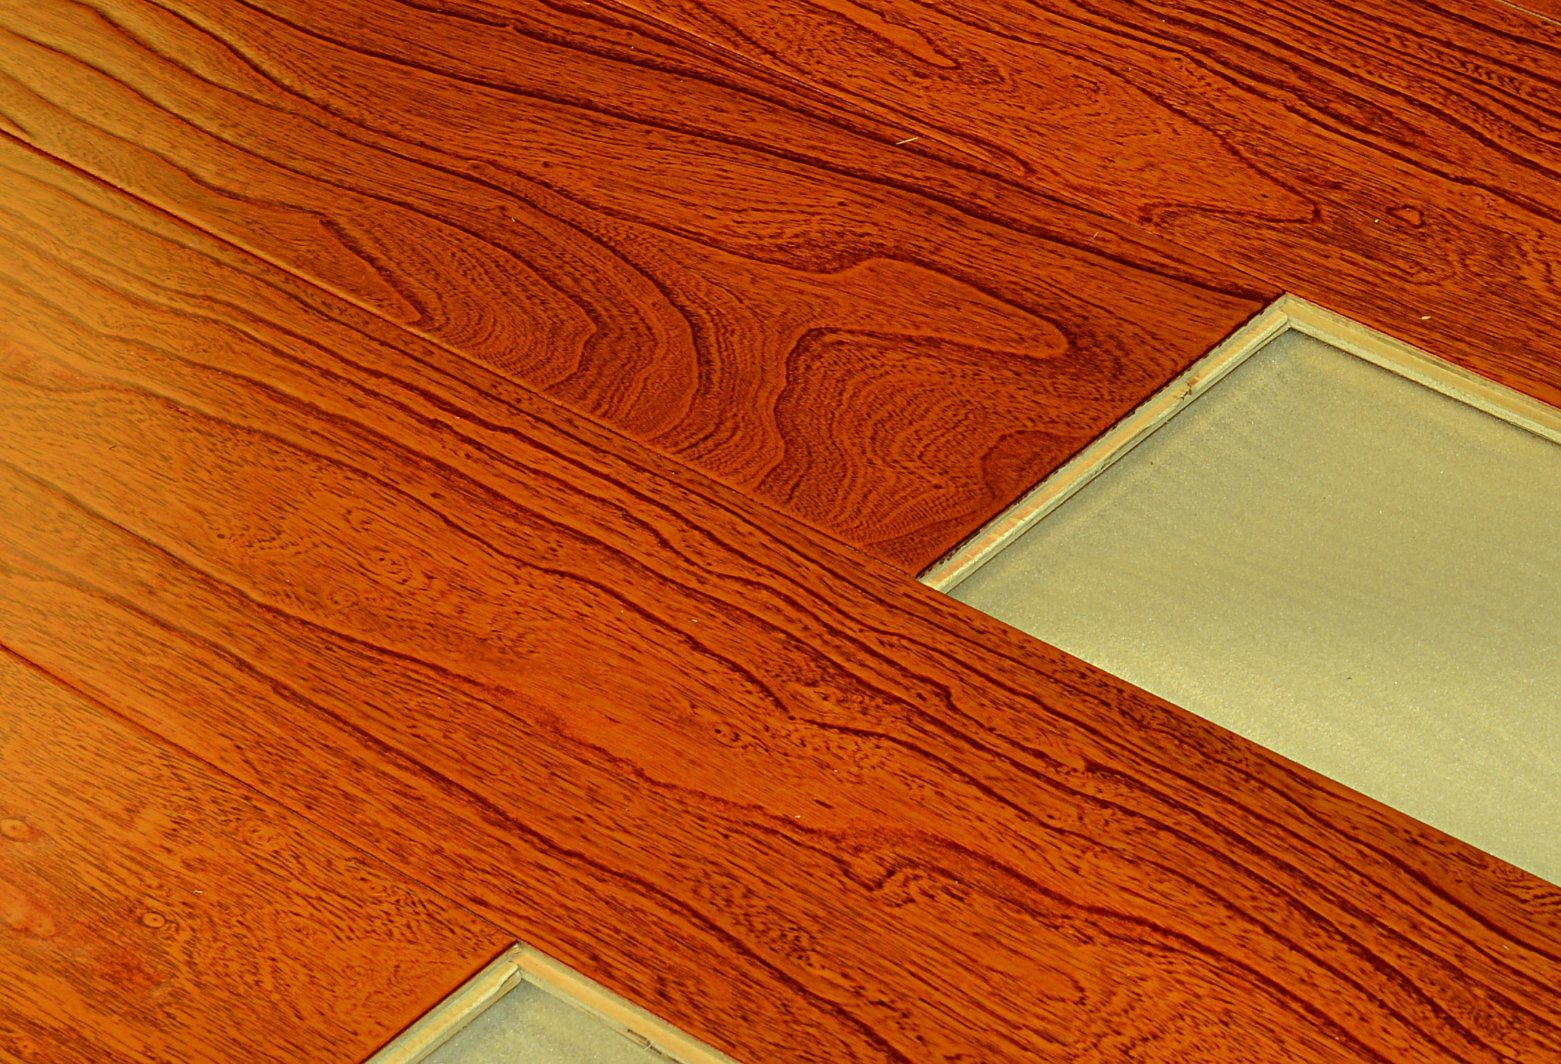 669 Elm Antique Wood Flooring